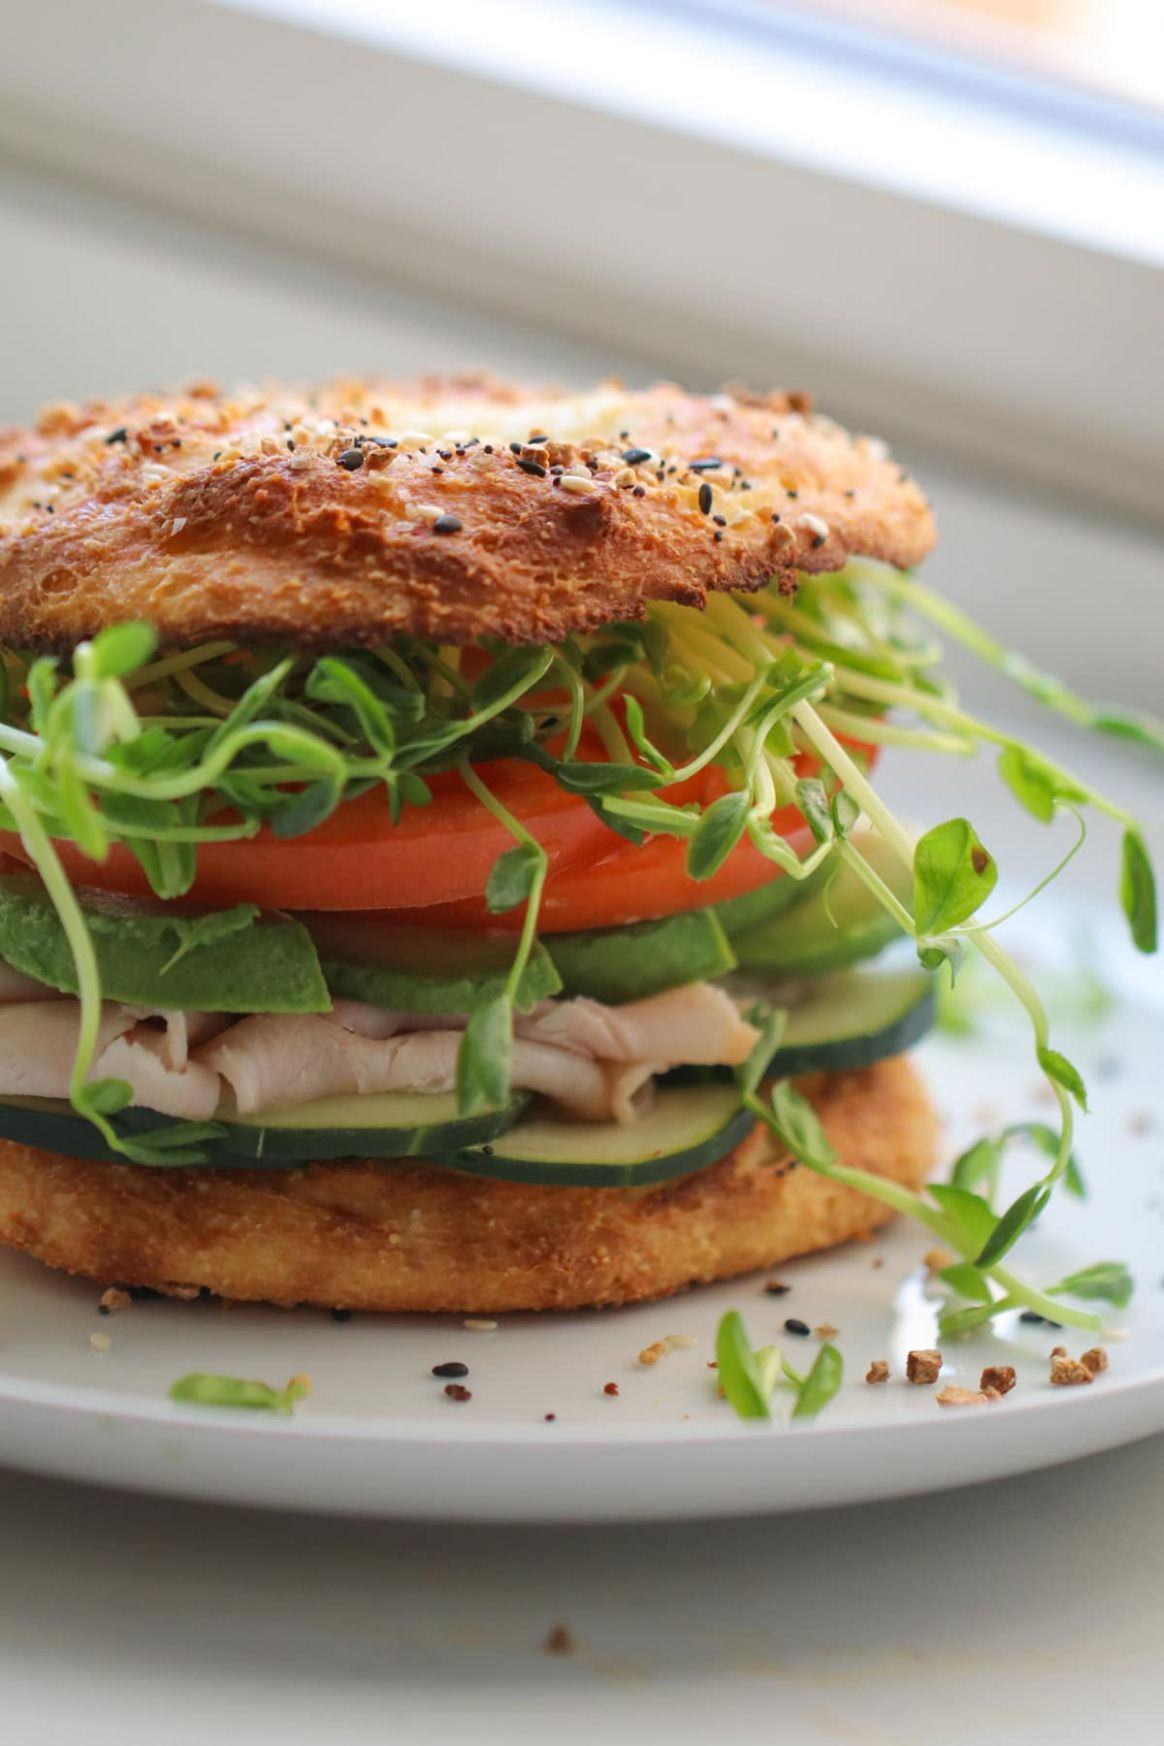 Low Carb Bagel Sandwich - Sandwich Recipes Low Cholesterol